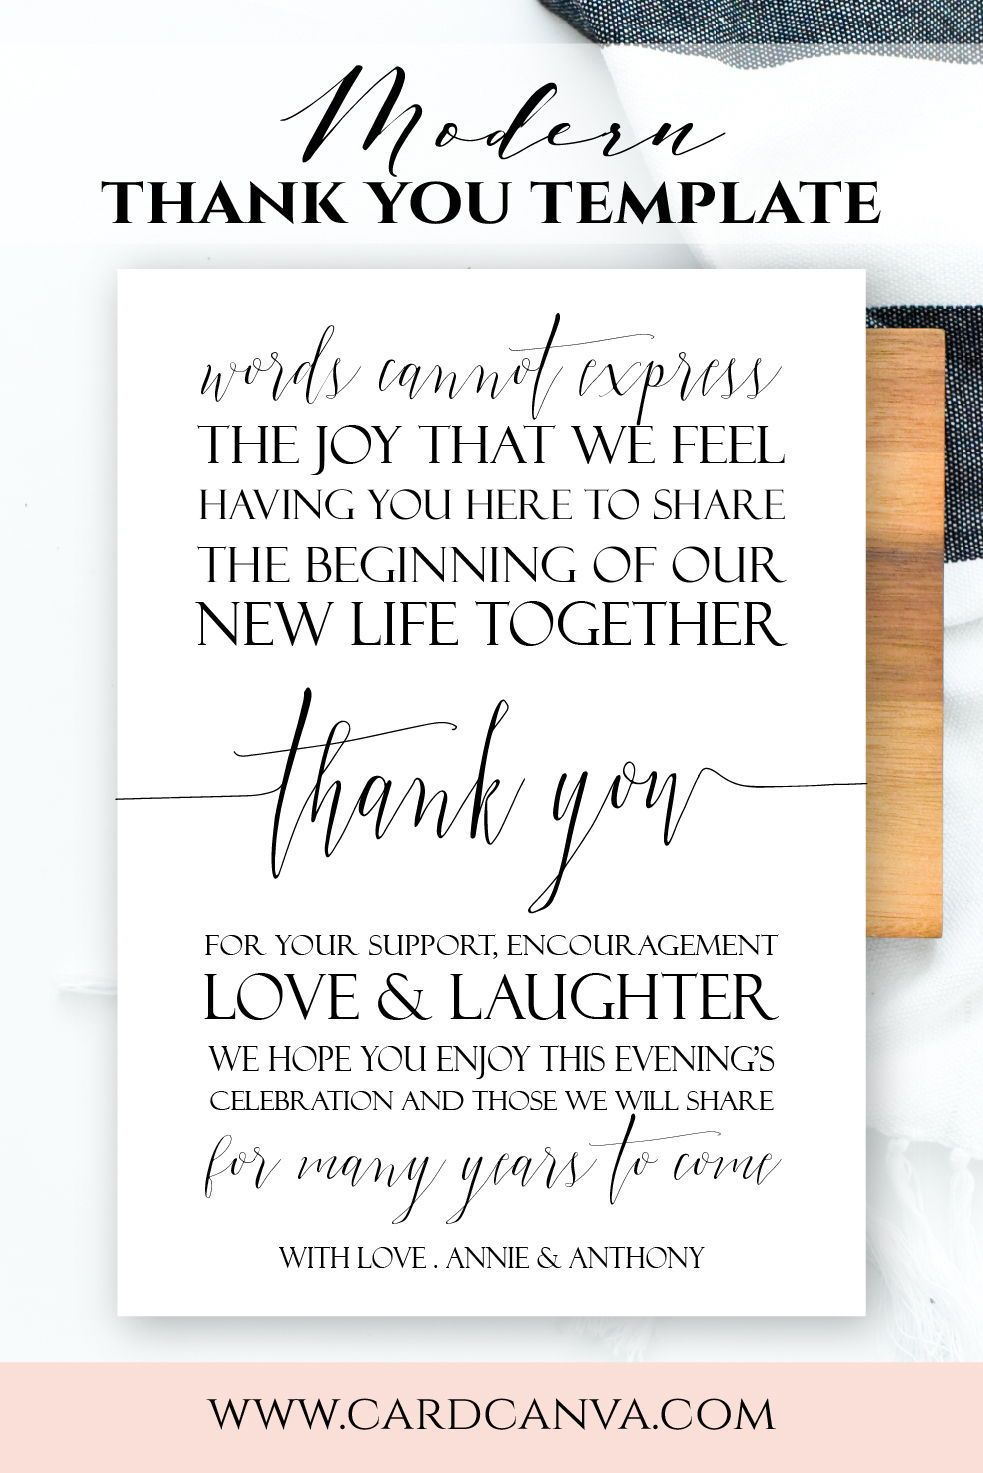 000 Singular Thank You Note Letter Template Word High Def Full